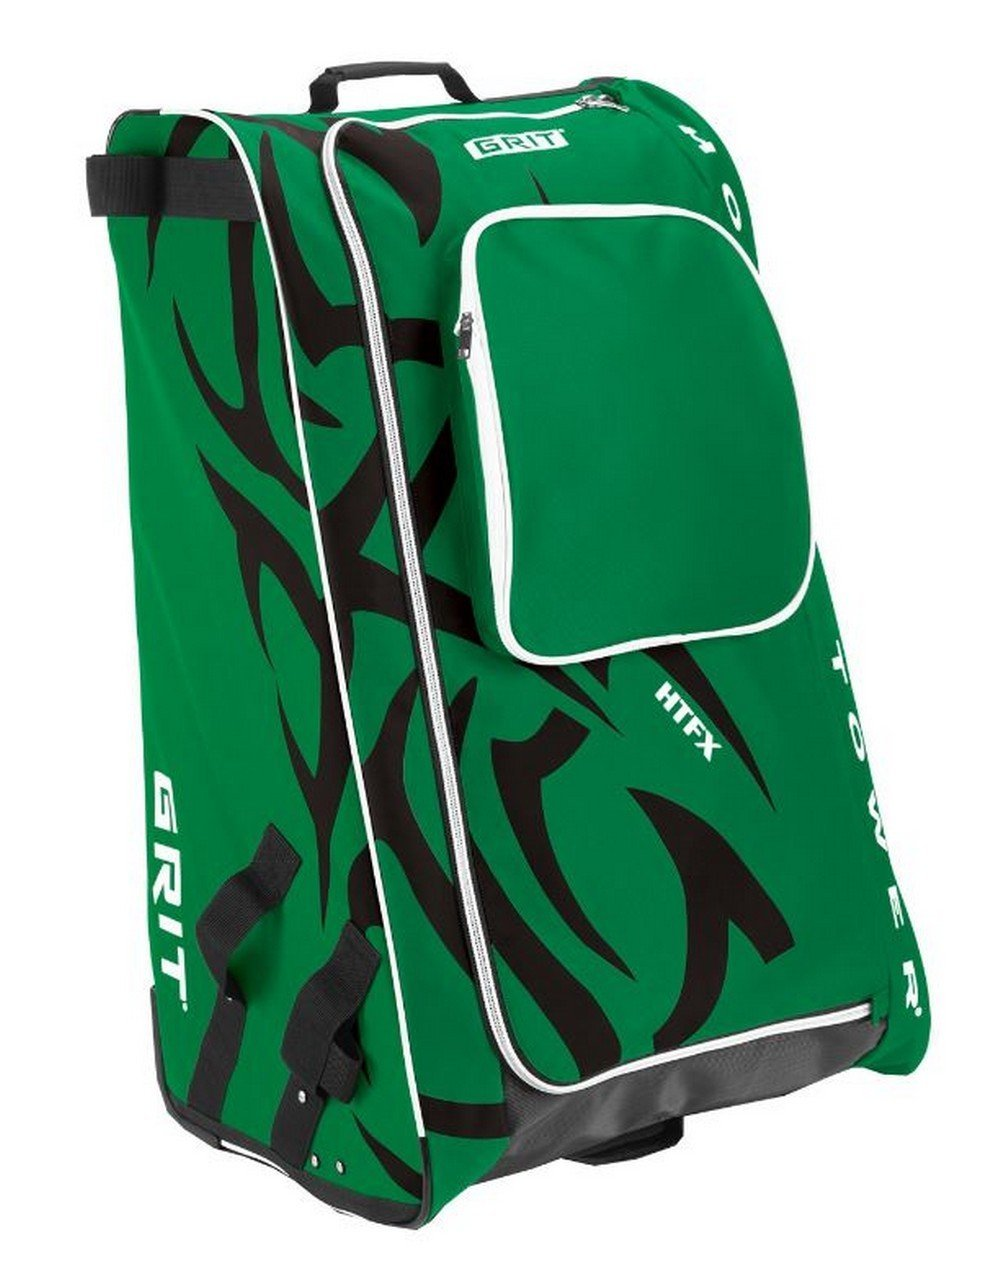 Grit HTFX Hockey Tower 33 Equipment Bag size:Junior; color:Boston